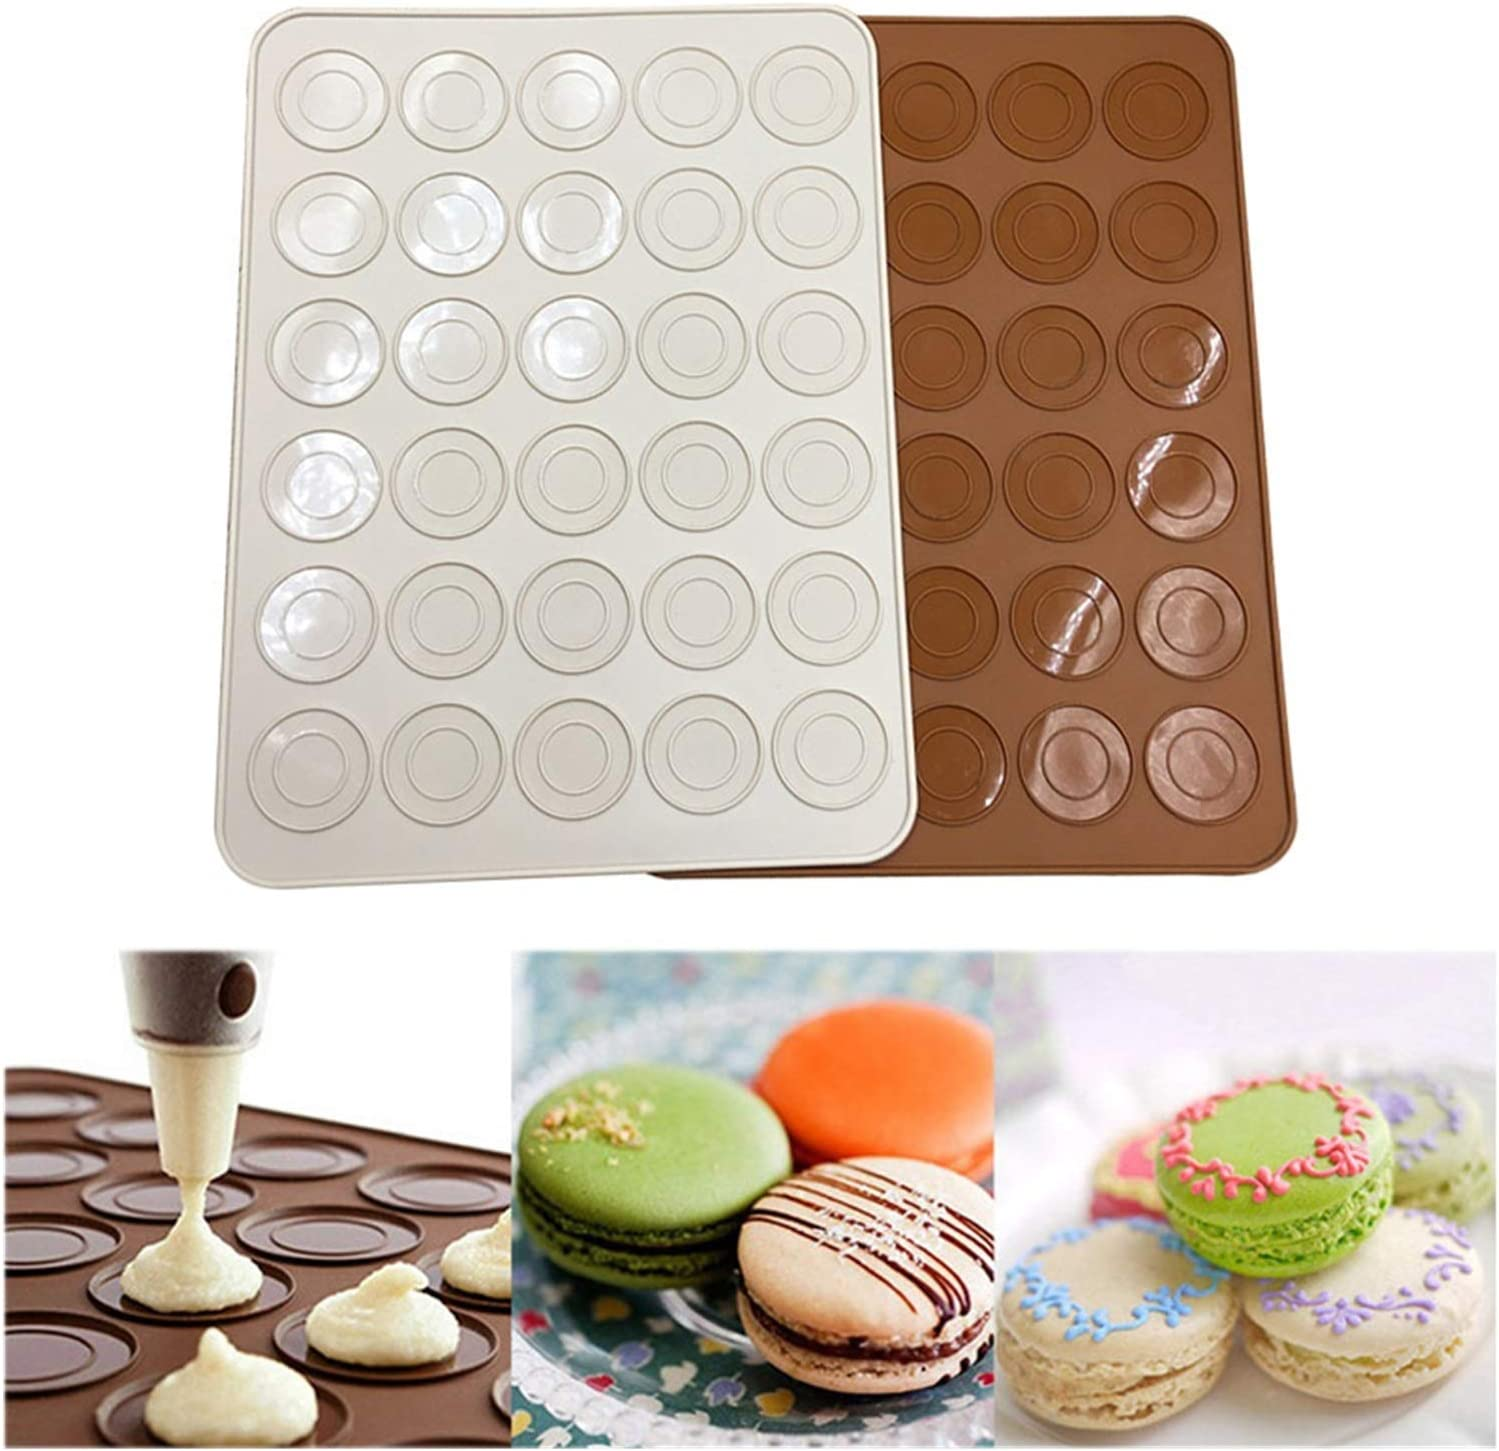 Mould Silicone Same day shipping Pastry Oven Baking Max 65% OFF Sheet Mat 30-Cavity DIY